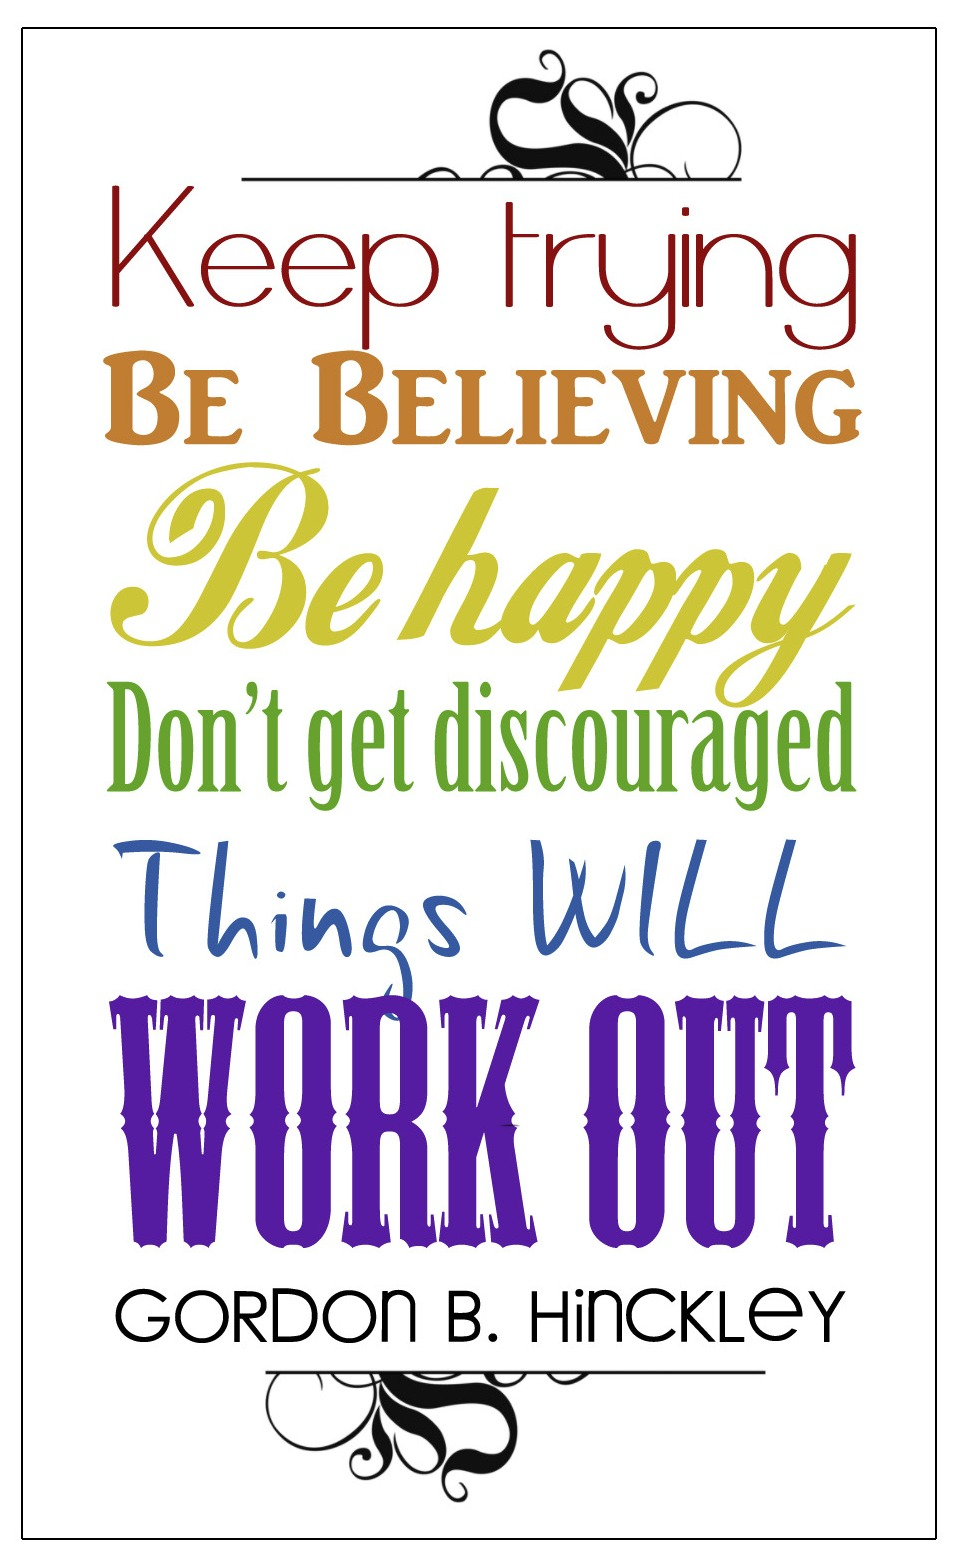 Gordon B Hinckley Quotes Quotes Archives  Page 8 Of 11  Simple Sojourns